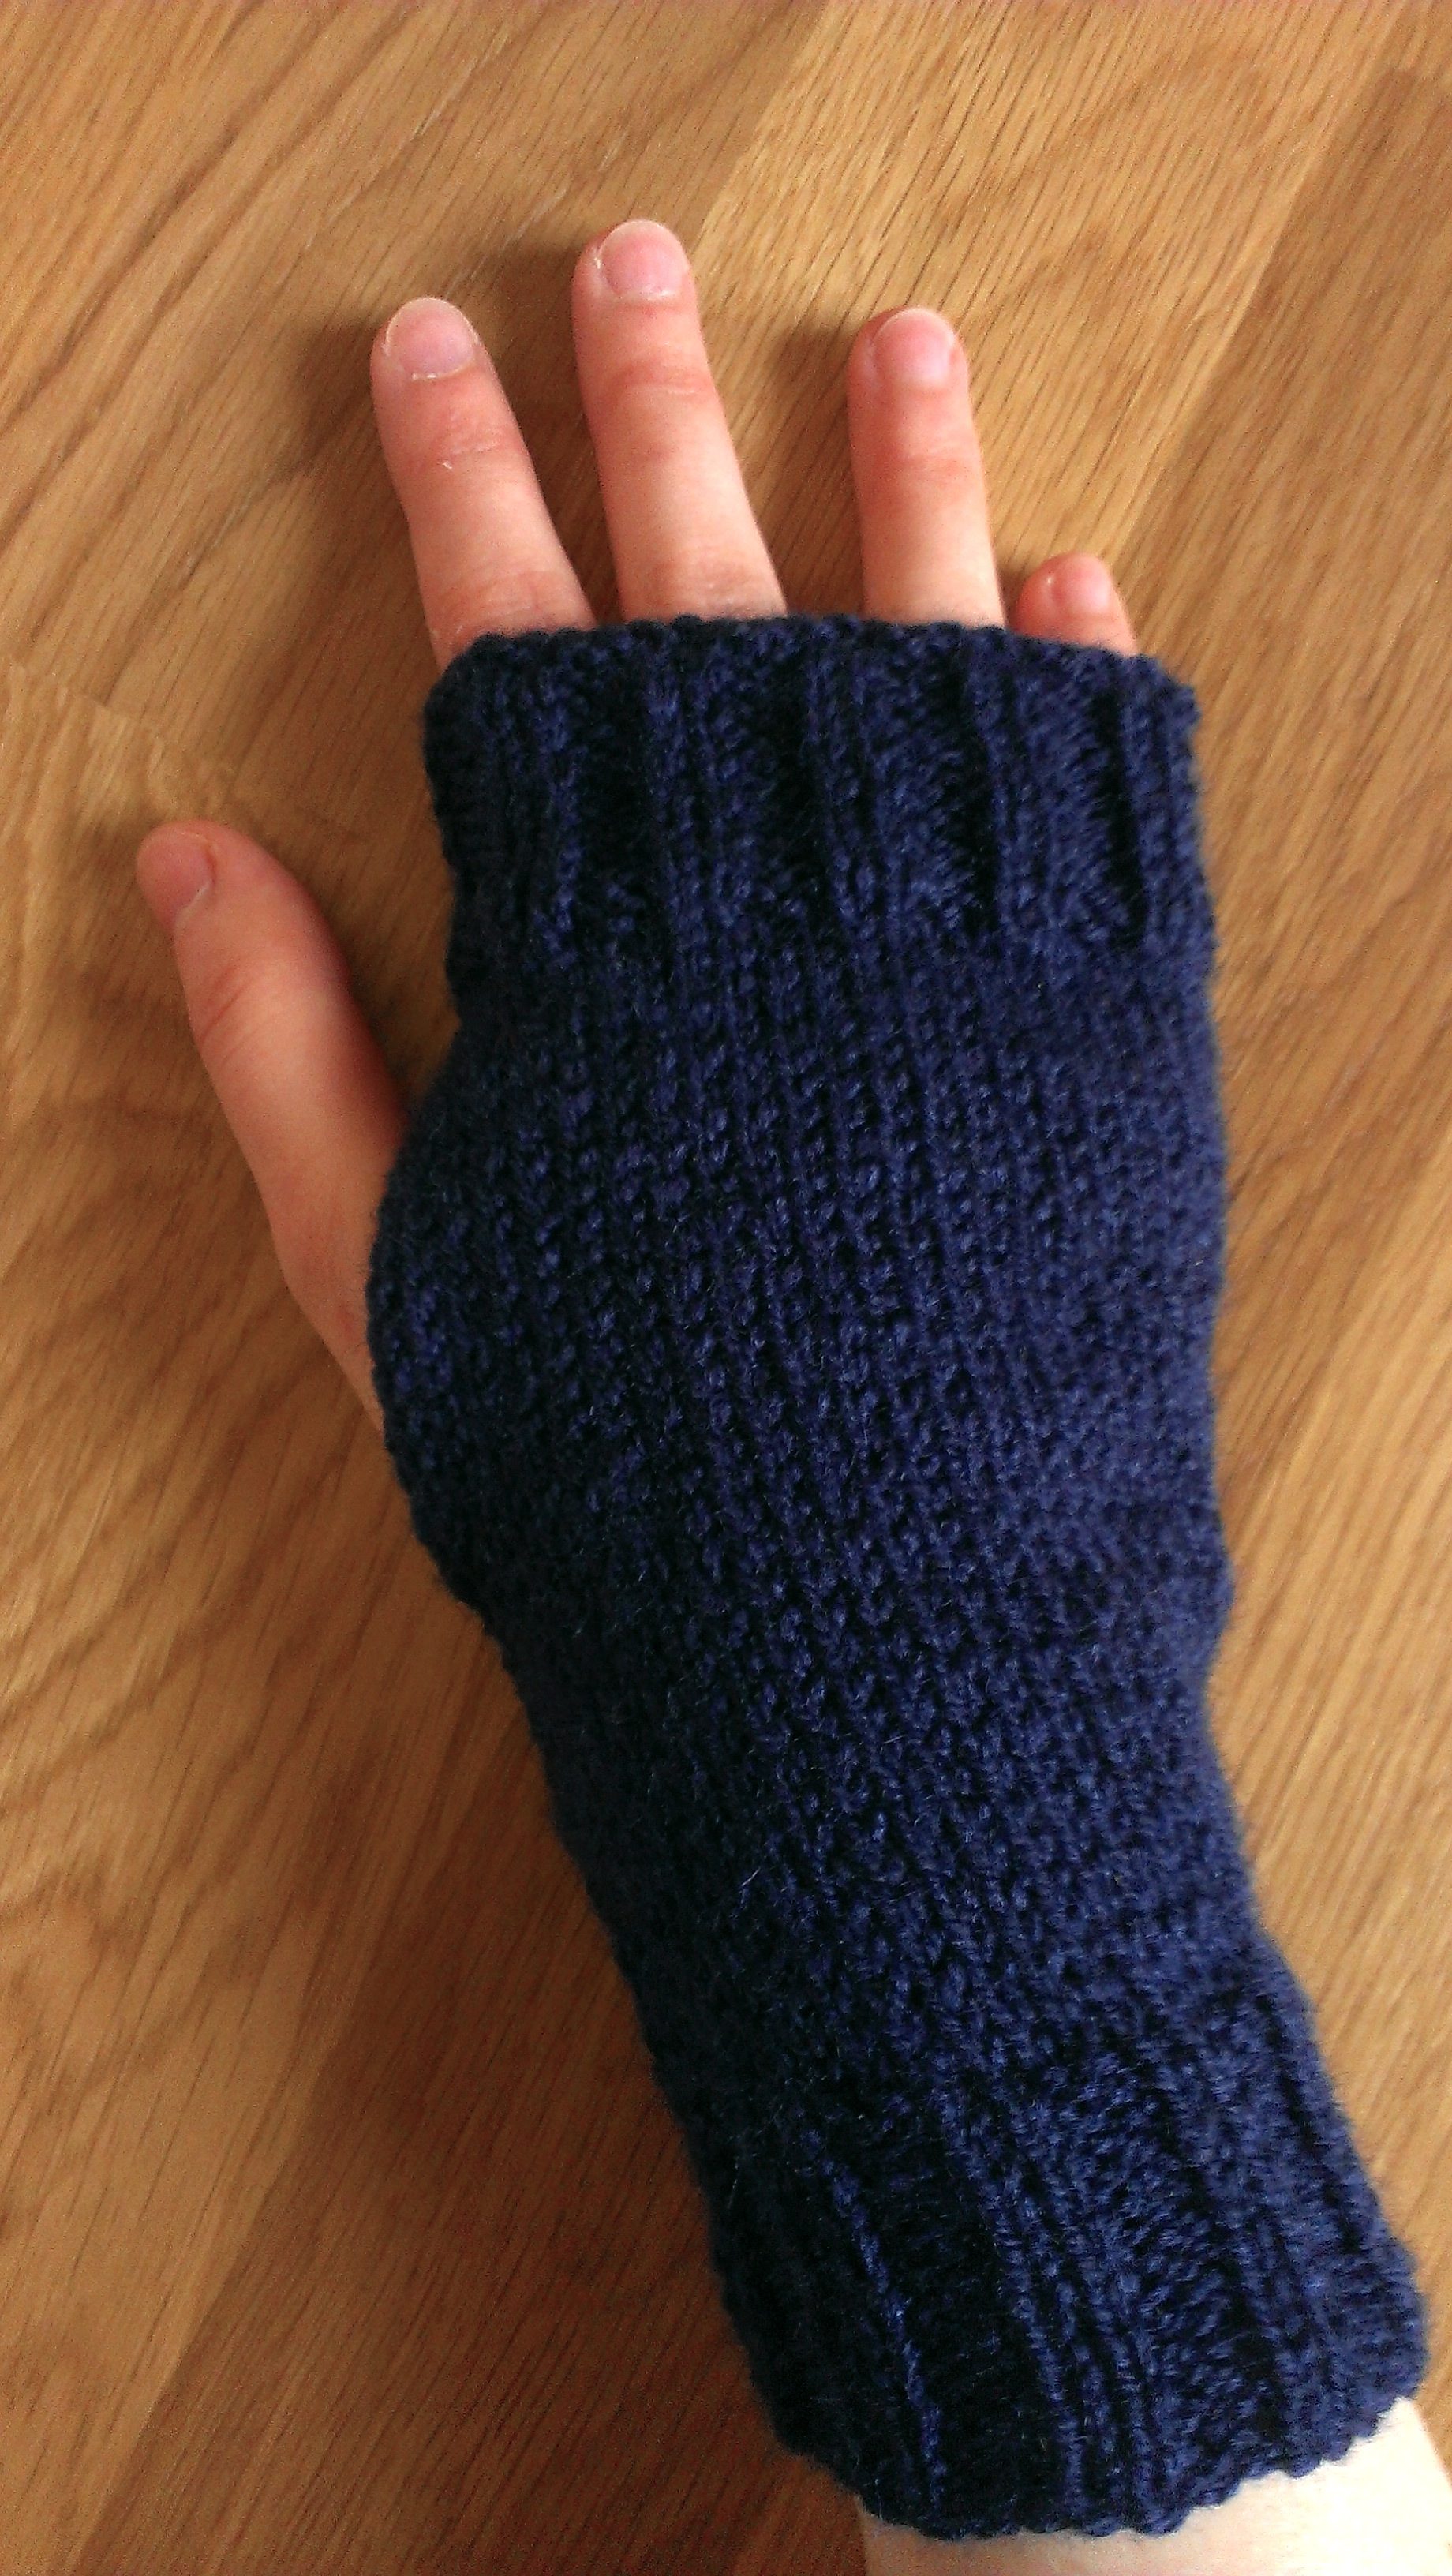 What are called fingerless gloves 6